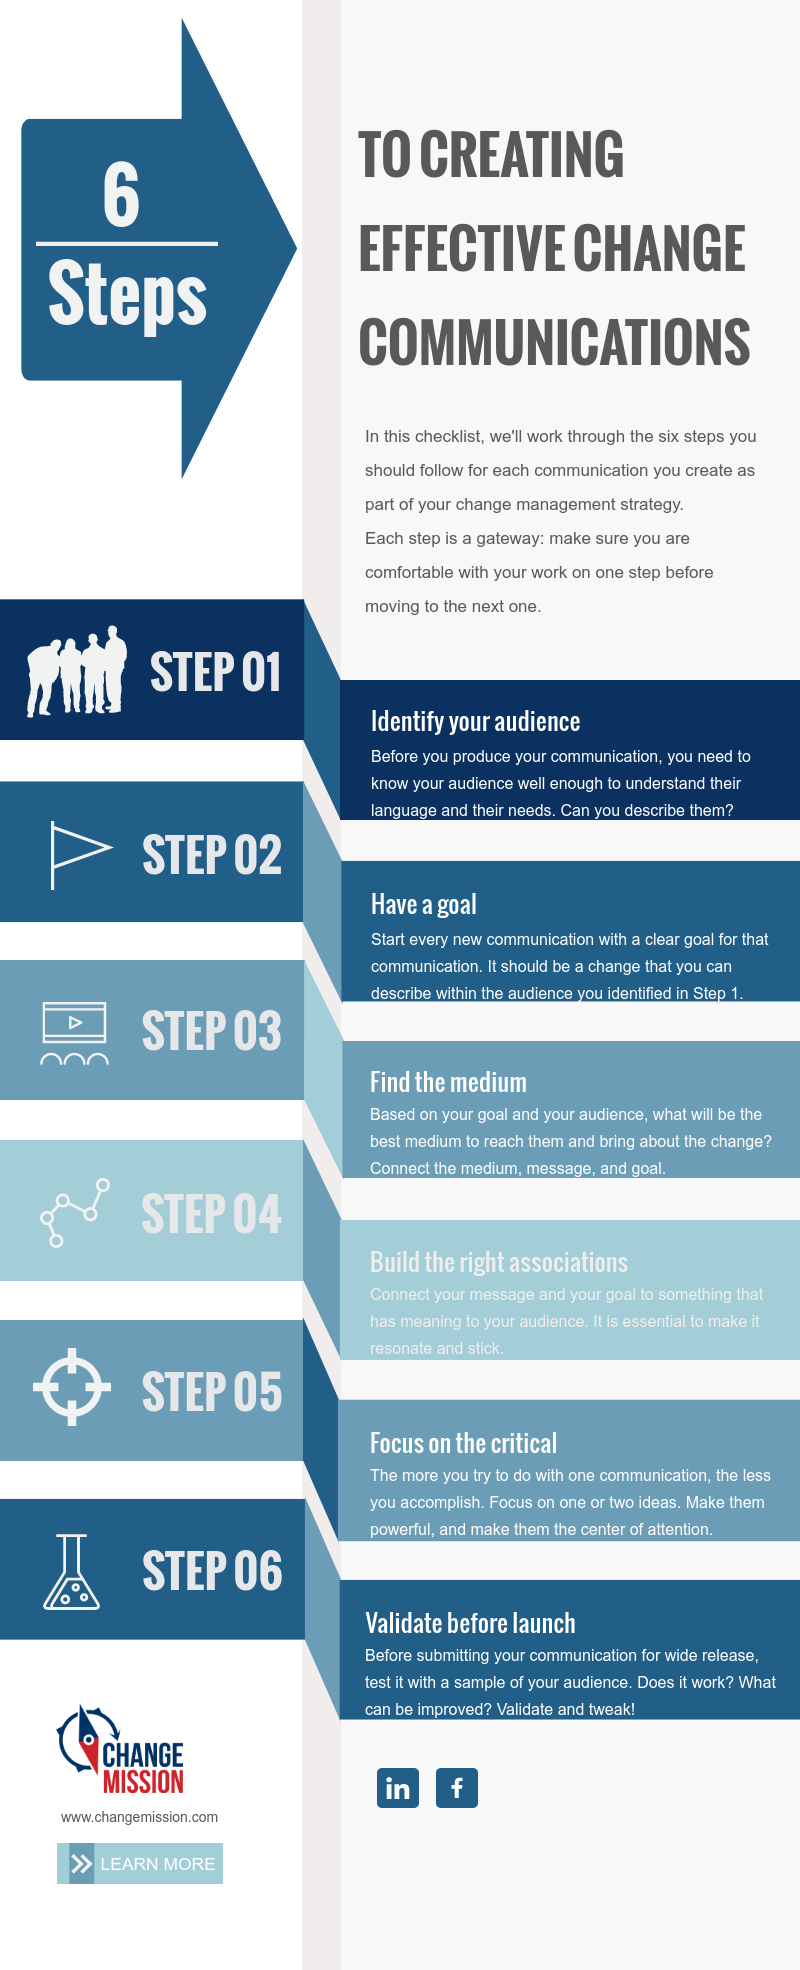 6-steps-to-effective-change-communications.png